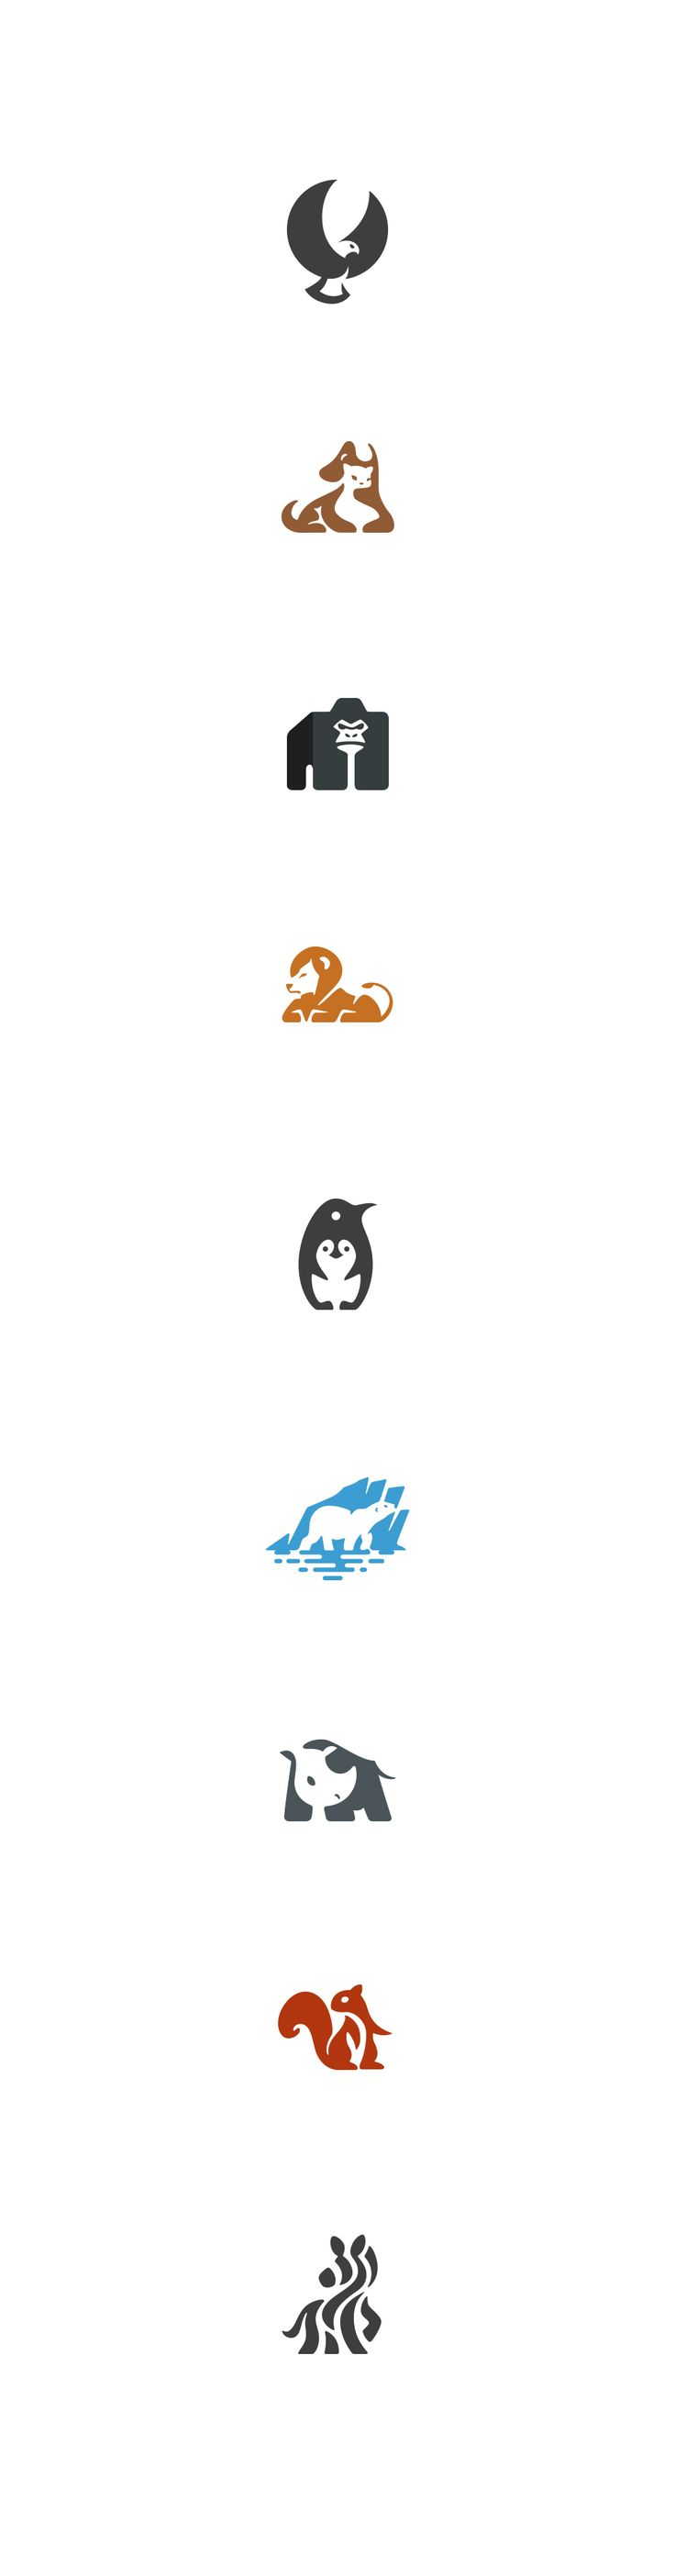 Negative space animals pt.2 #negative #space #logo #animals #marks #design #identity #brand #penguin #lion #rhino #gorilla #eagle #illustration #kreatank